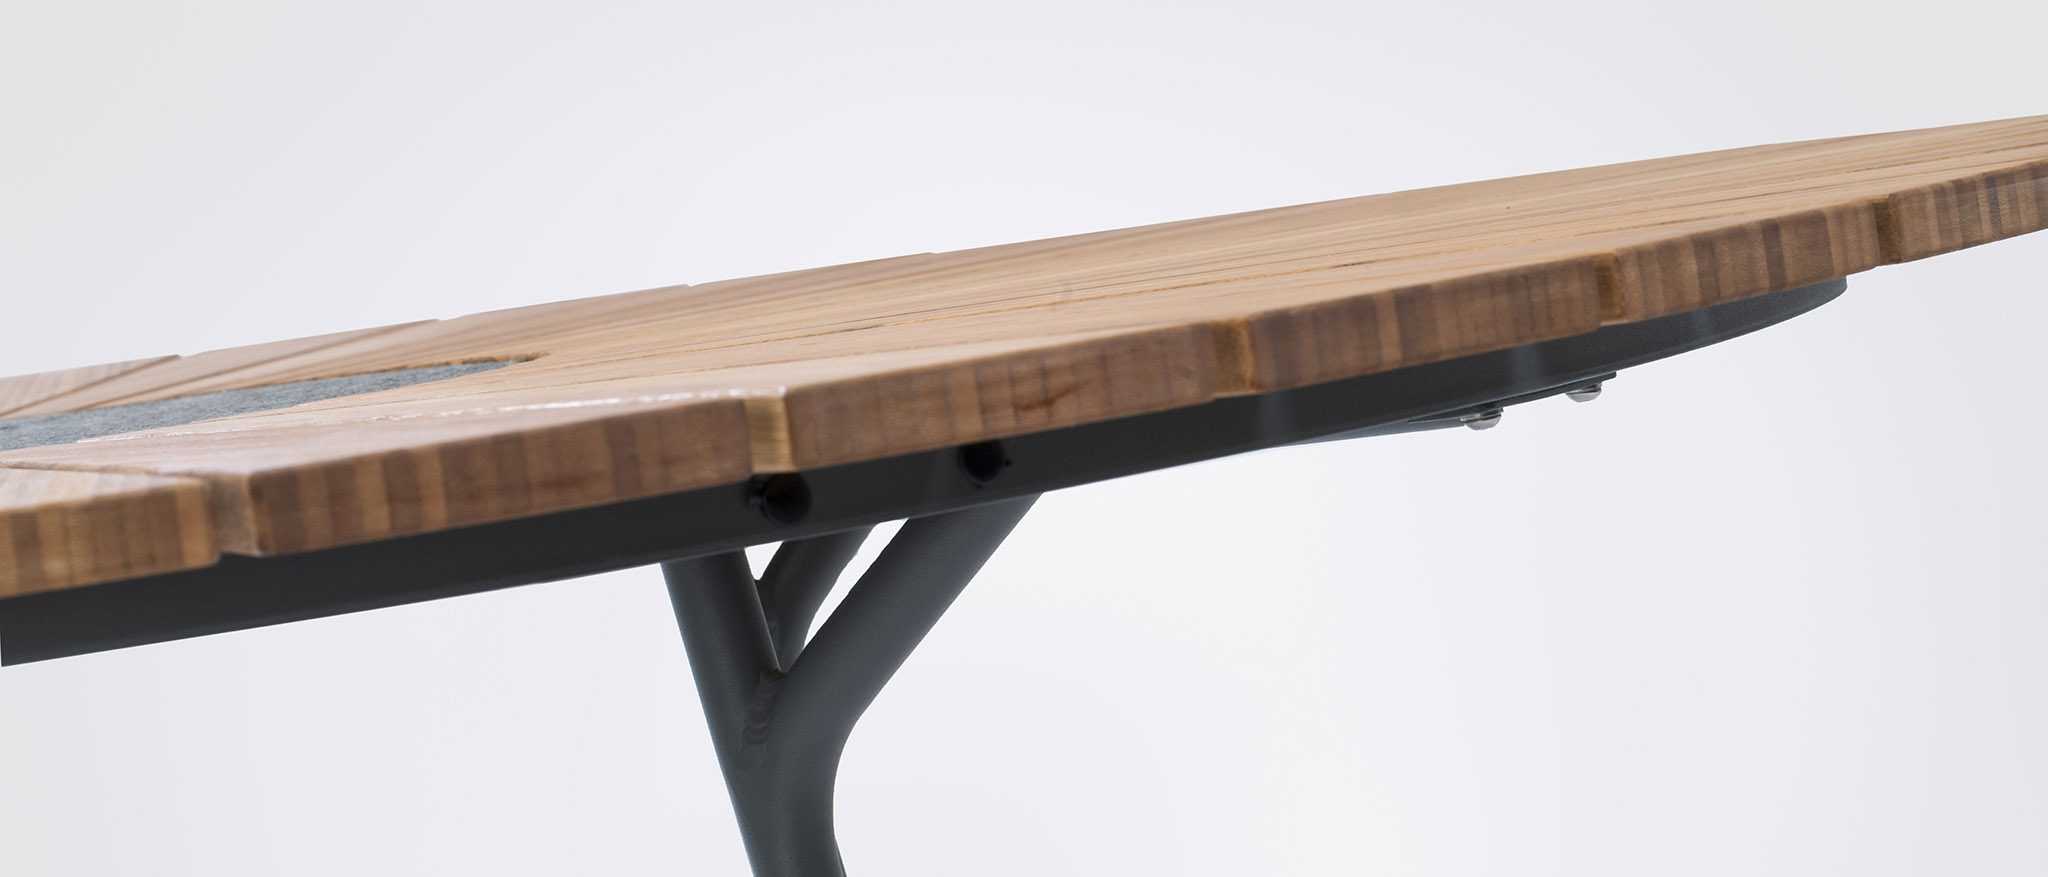 PLAYNK Bamboo table details from Ledge Lounger and HOUE